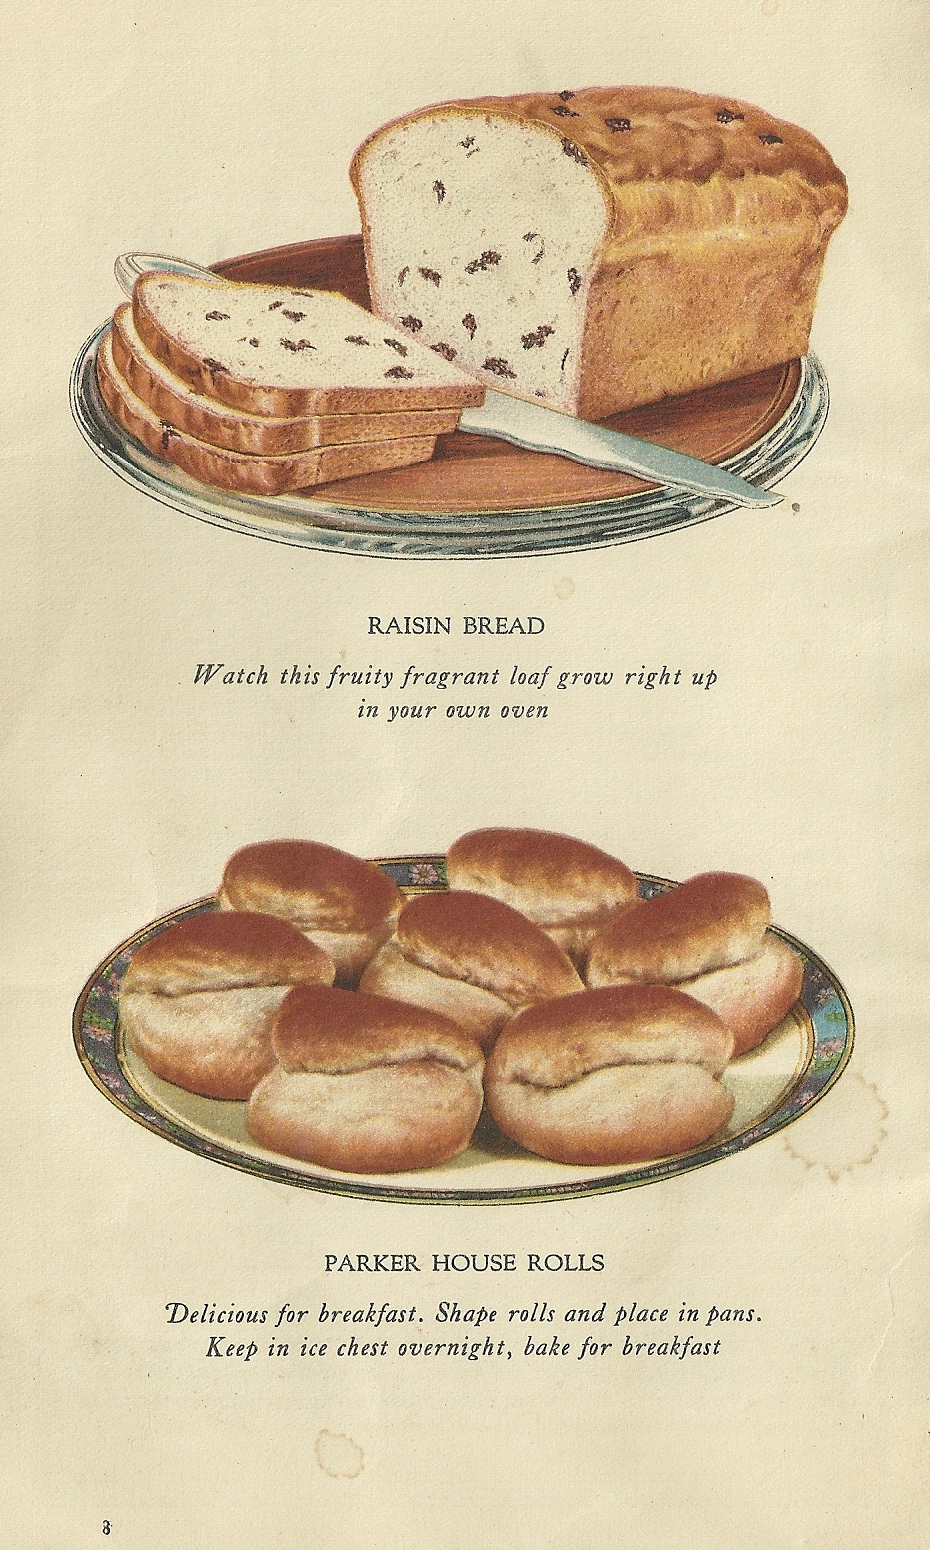 Vintage Recipes Art of Baking Bread 8 | Antique Alter Ego